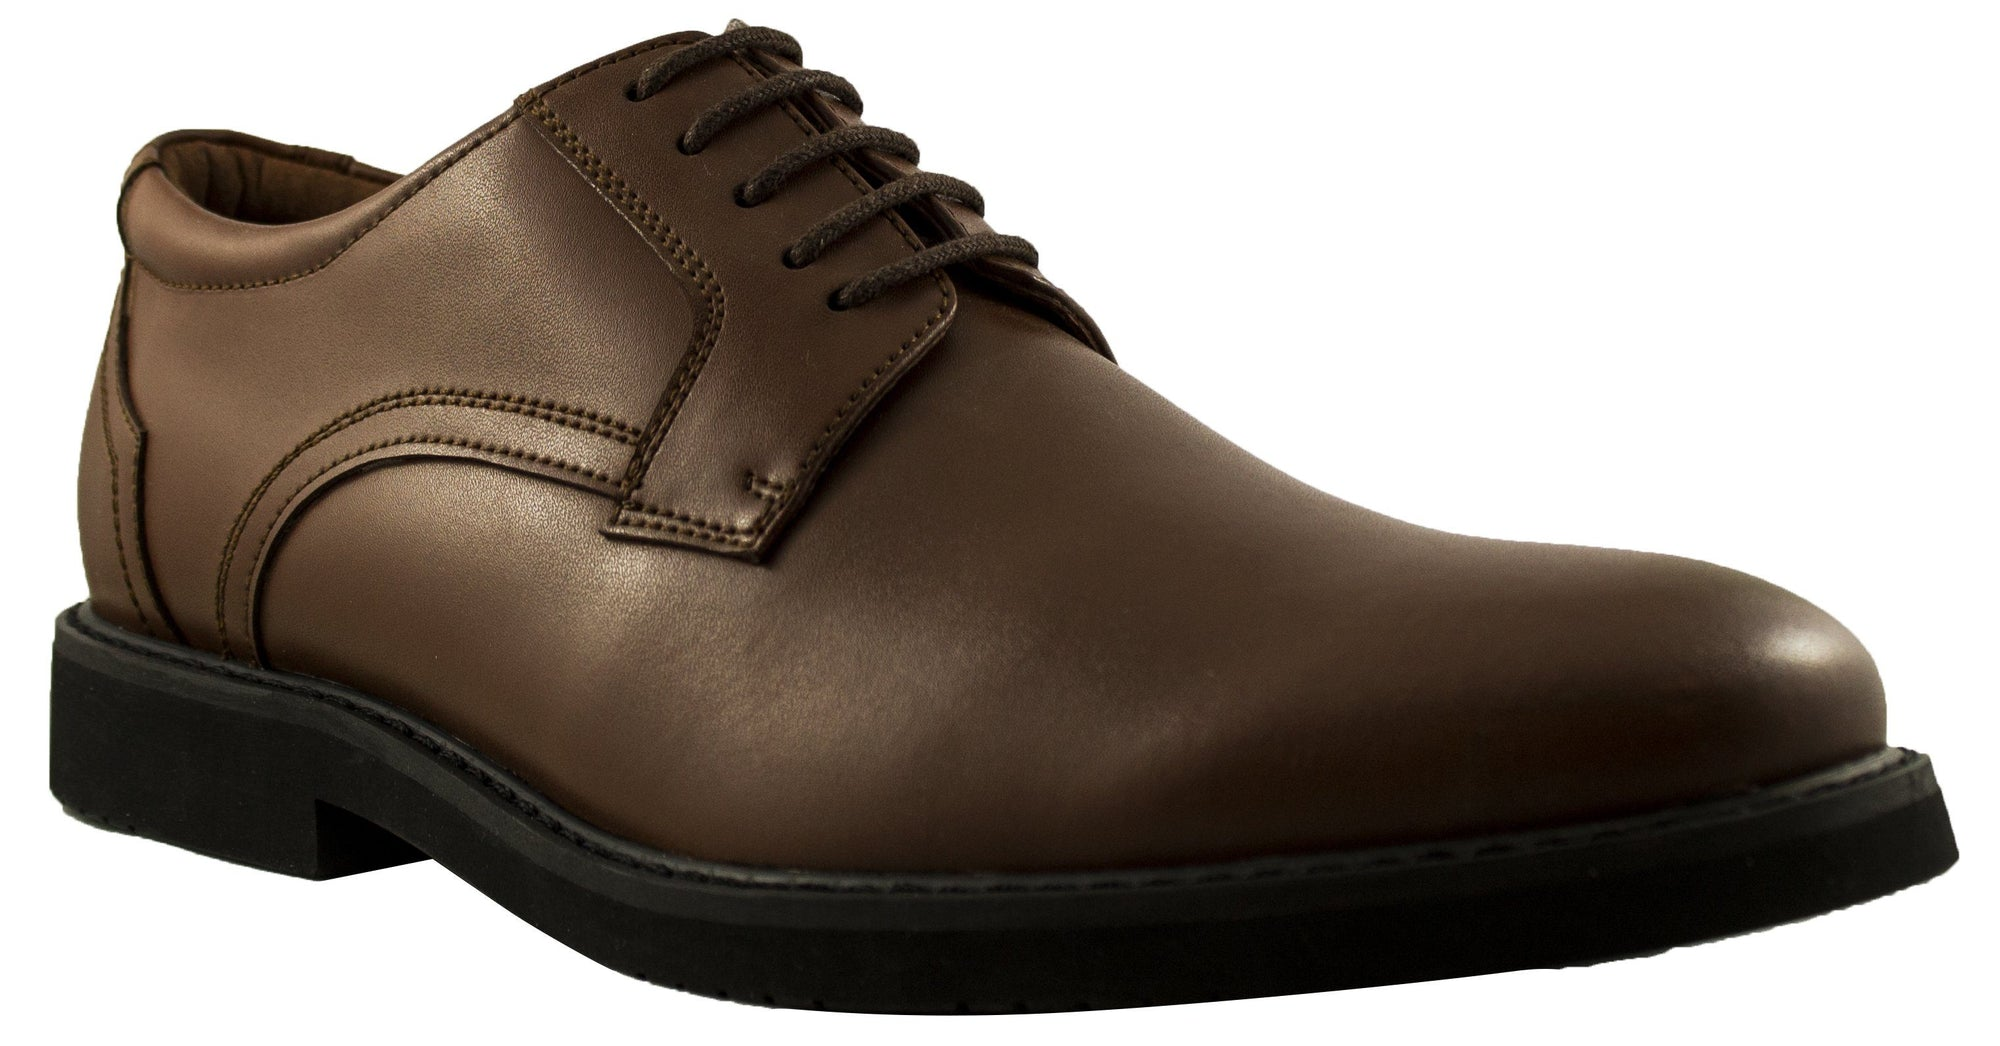 Geoffrey Beene - Wall St Leather Toe Cap Dress Shoe - Brown Footwear Geoffrey Beene